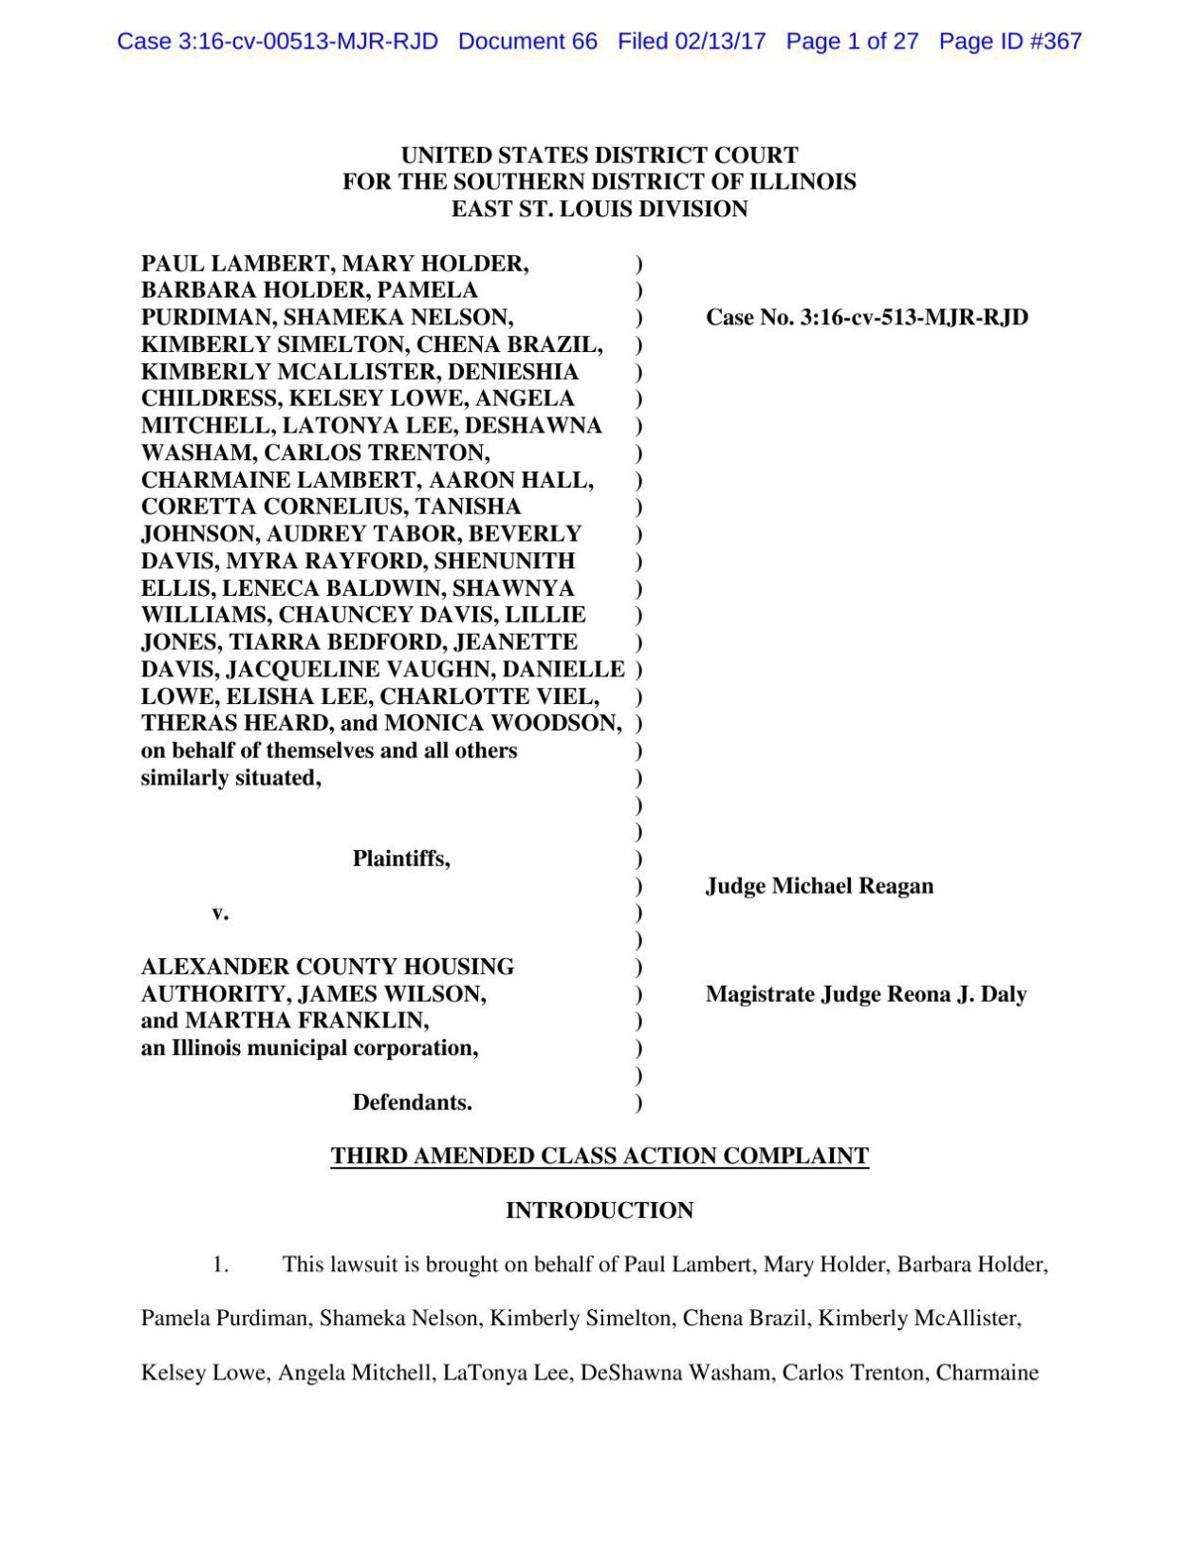 Civil lawsuit against ACHA.pdf